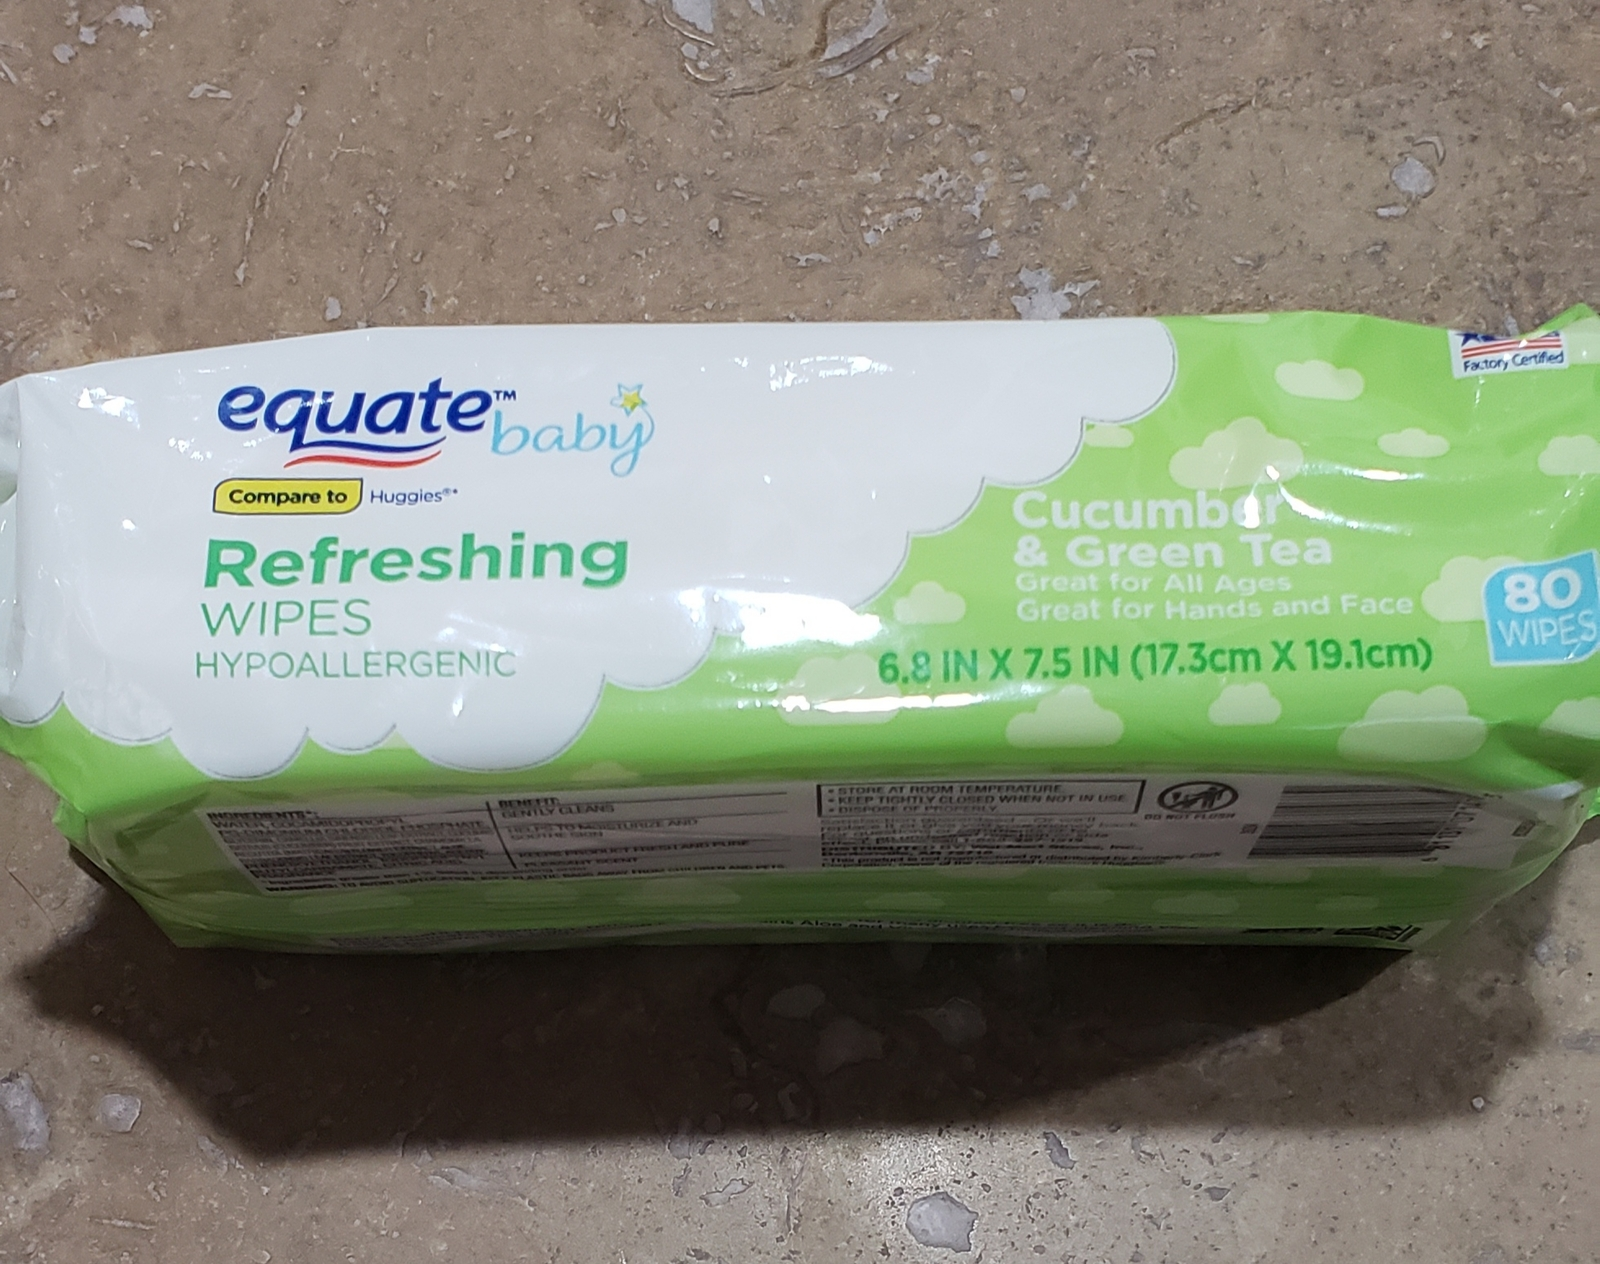 Equate Baby Everyday Clean Wipes Hypoallegenic 80 Wipes Vitamin E Fragrance Free